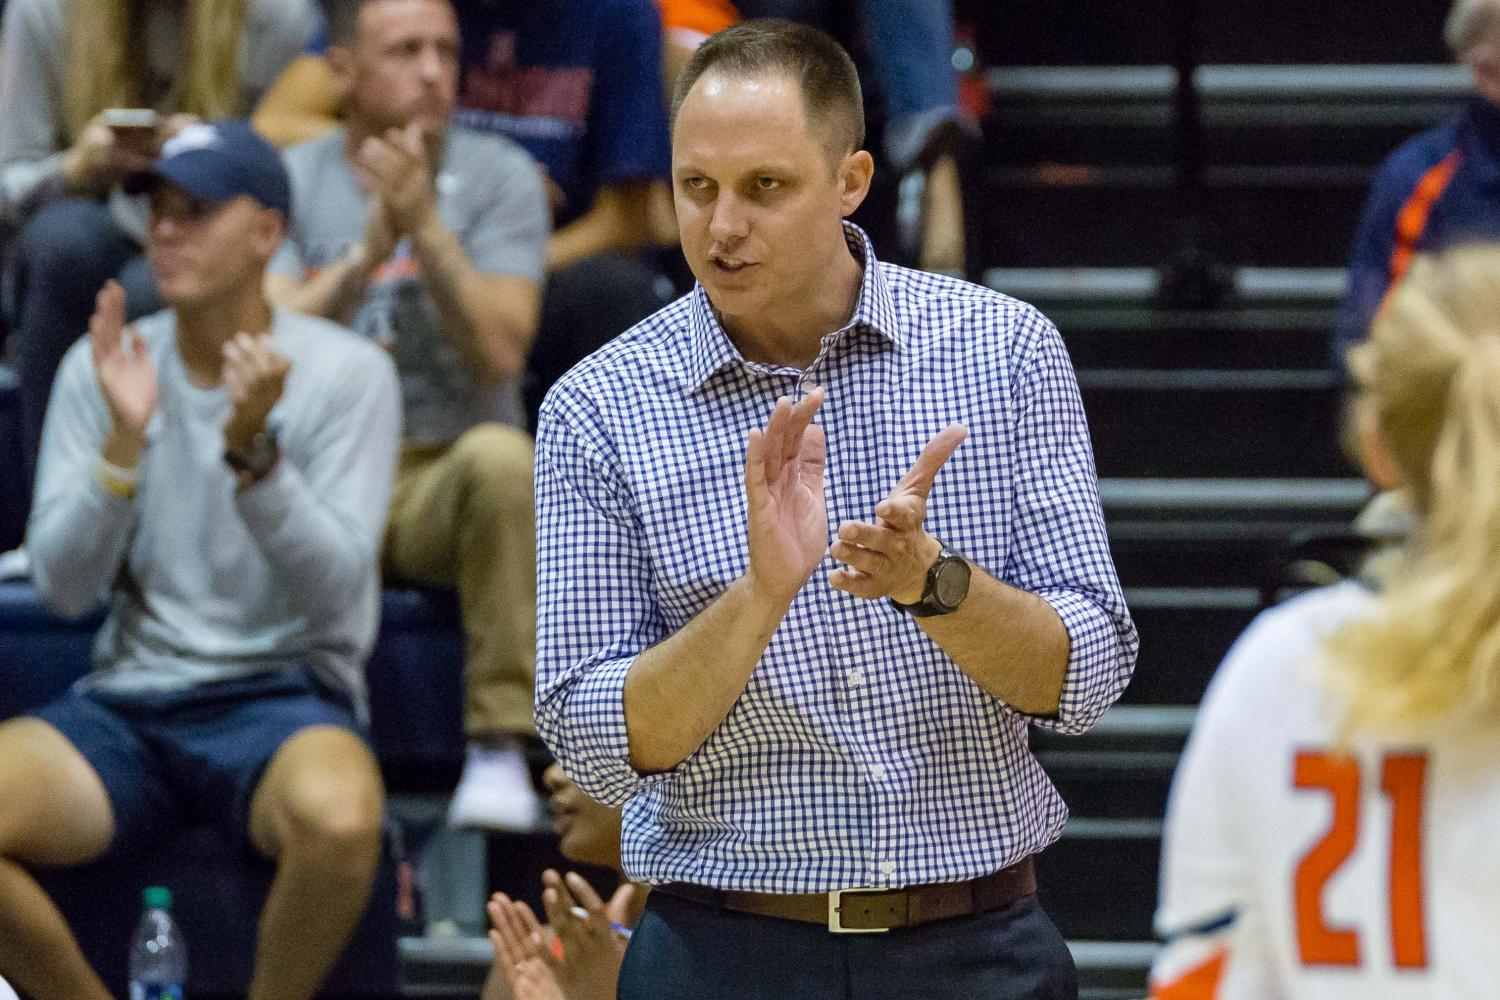 Illinois head coach Chris Tamas claps for his team during the match against Stanford at Huff Hall on Friday, September 8. The Illini lost 3-0.